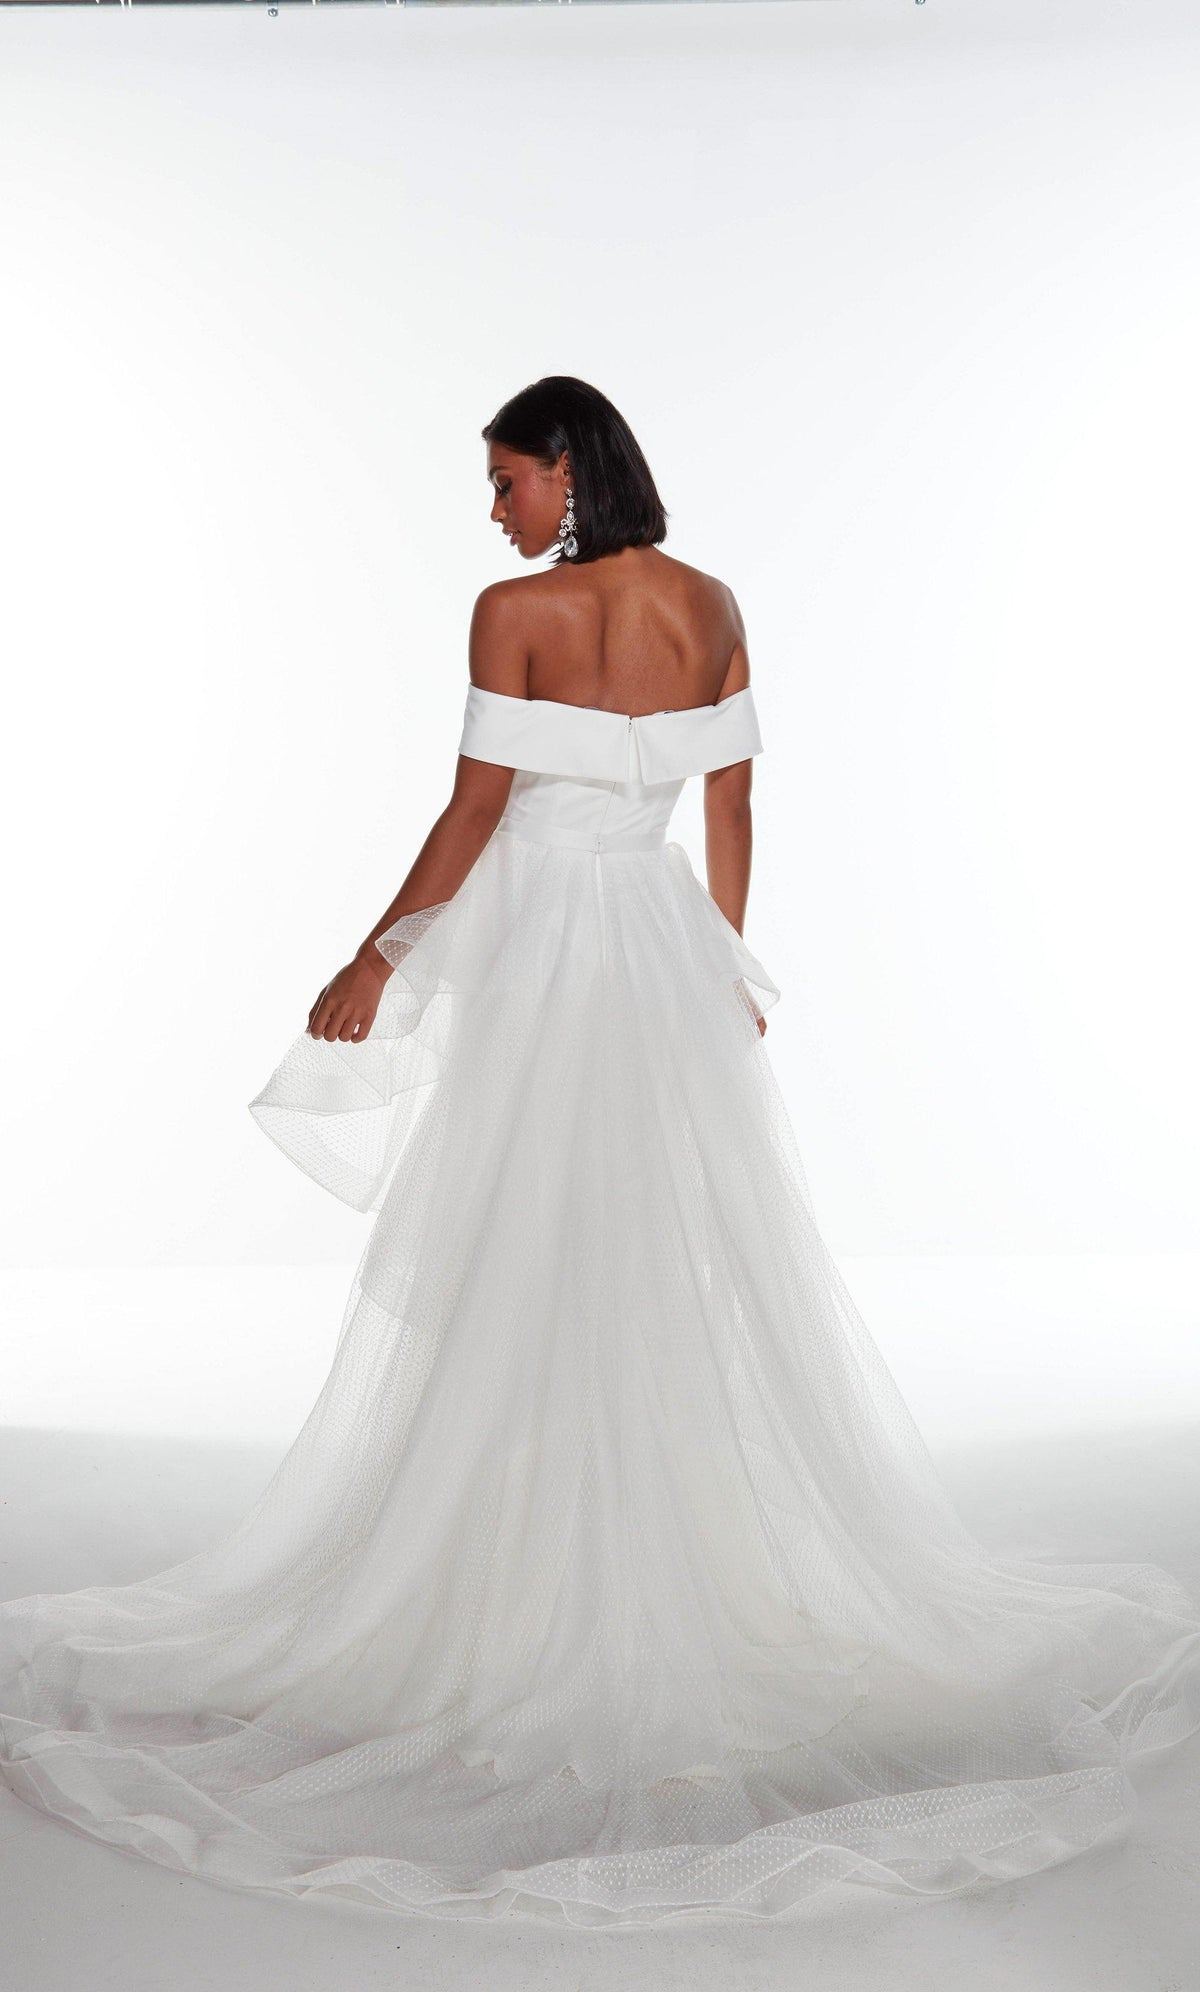 Diamond White off the shoulder satin wedding dress with an enclosed back and detachable, layered overskirt